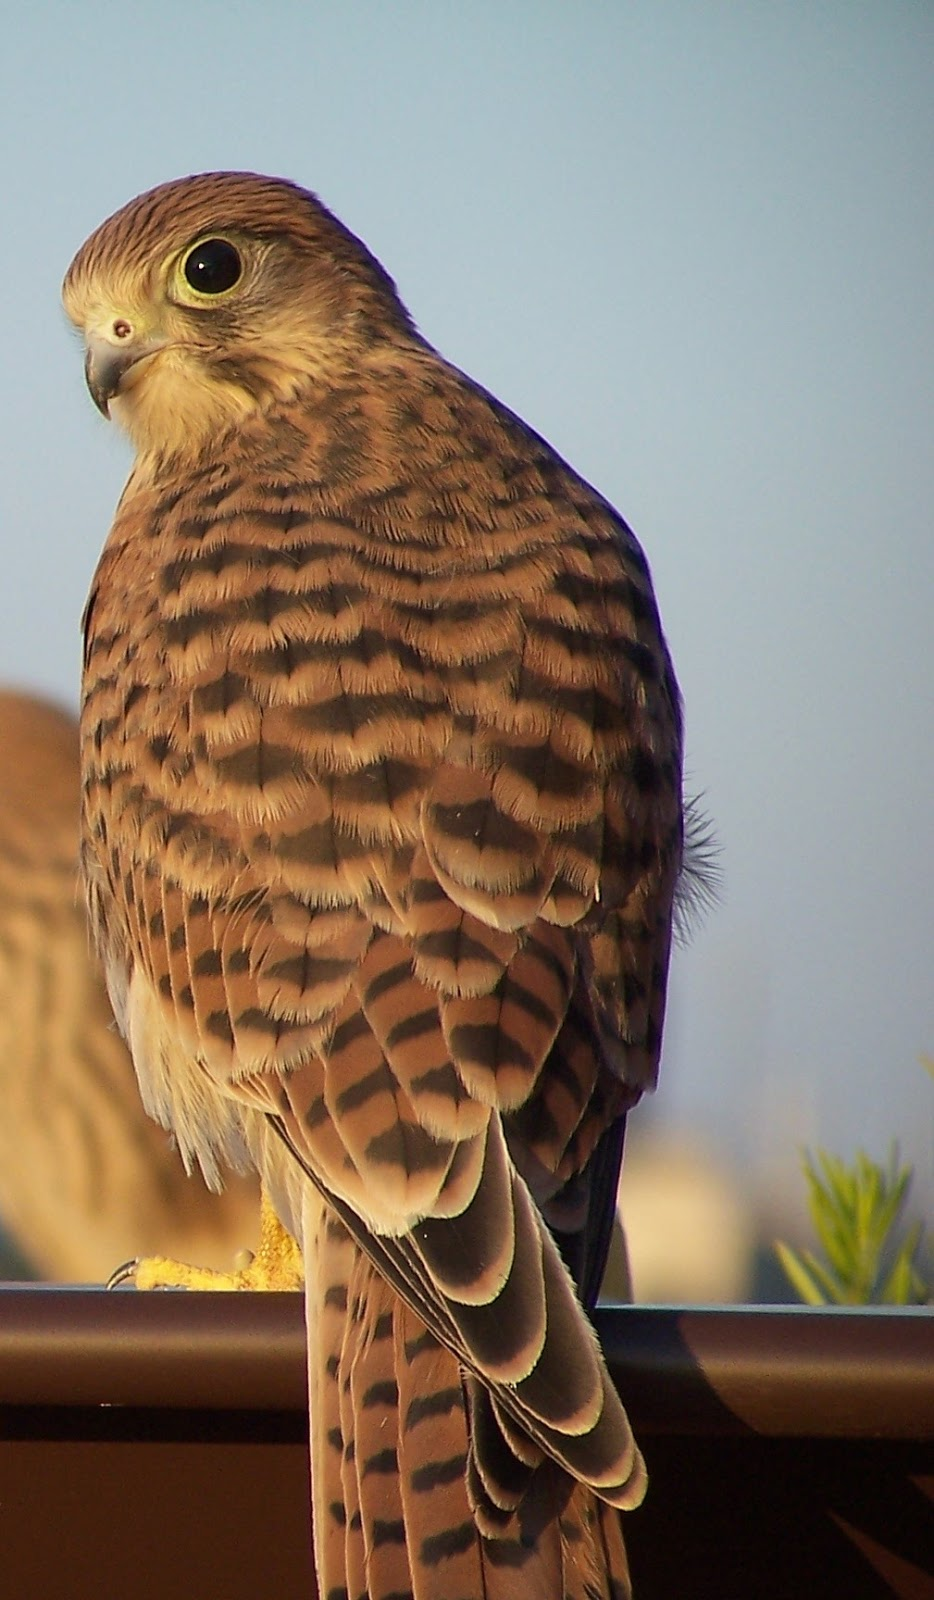 A close shot of the beautiful kestrel bird as viewed from behind.